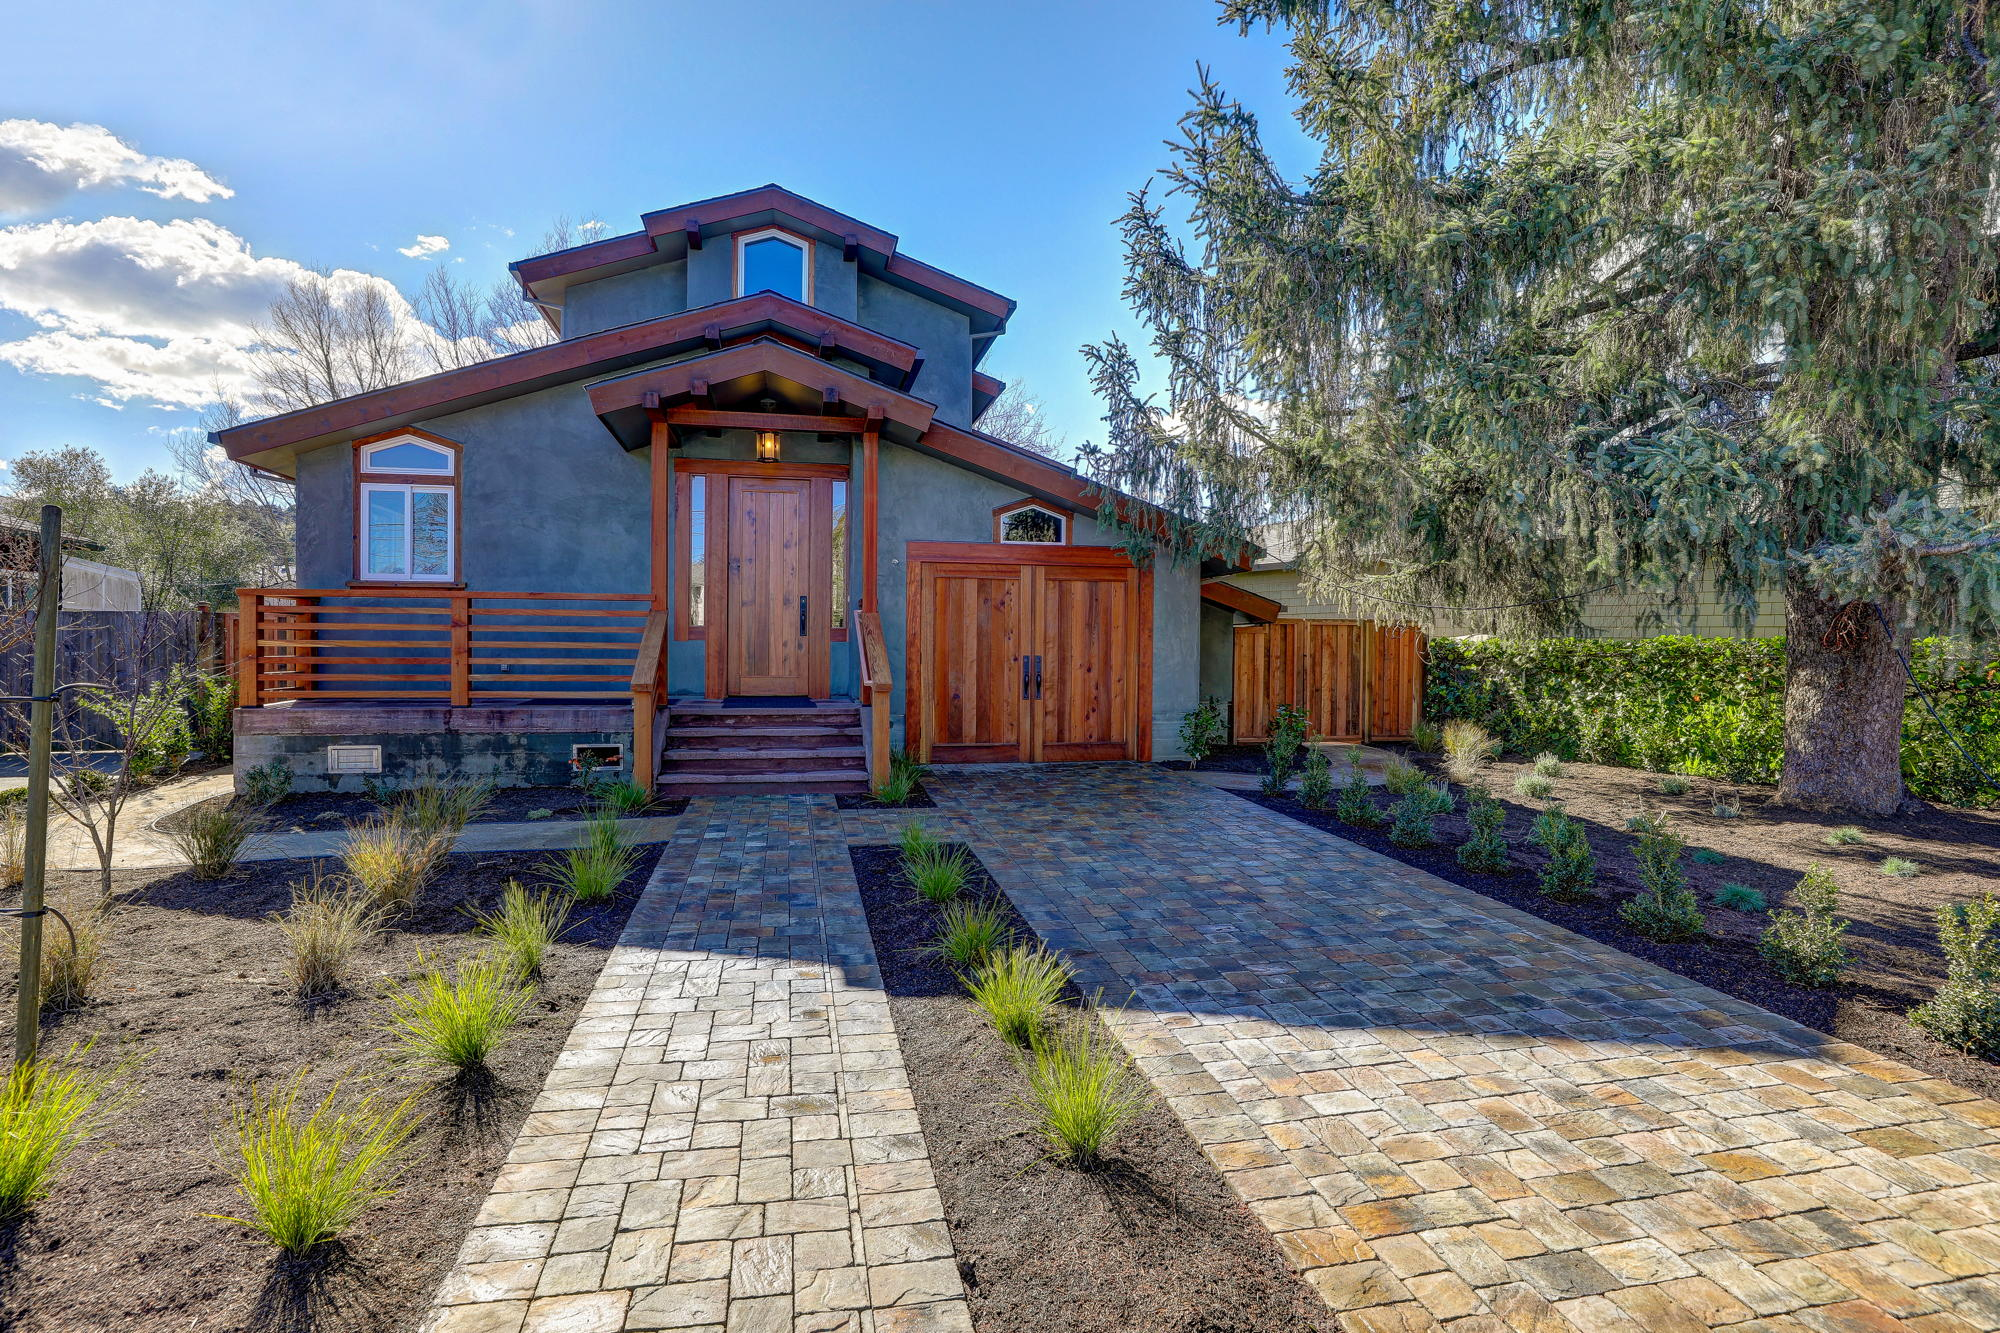 38 Ryan Avenue, Mill Valley - Sycamore Park Homes for sale - 03- Listed by Team Own Marin with Compass Real Estate.jpg